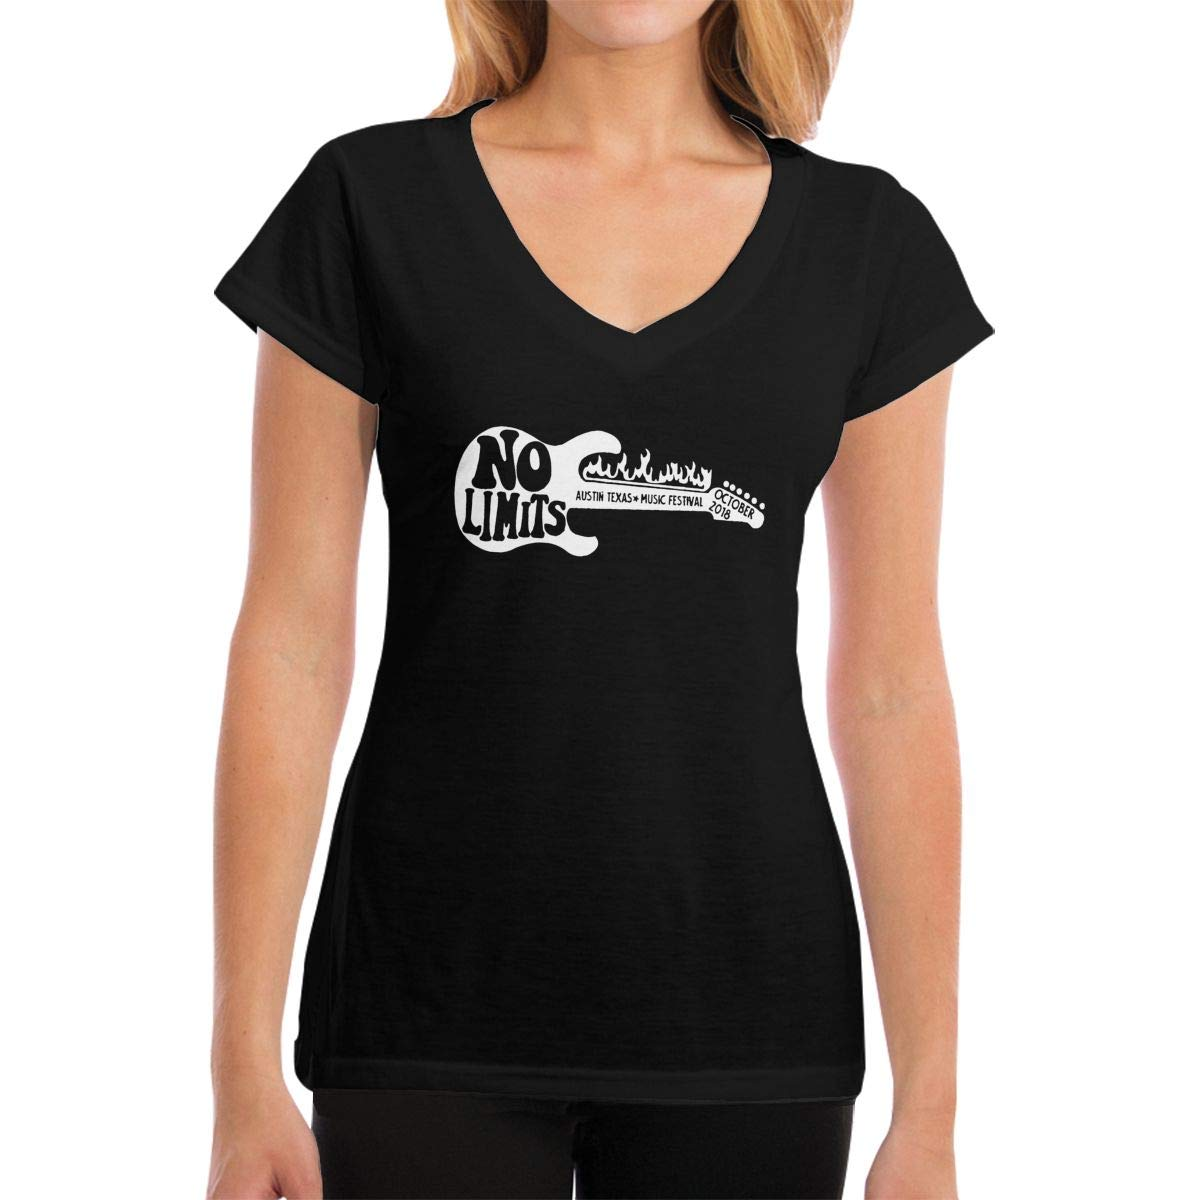 Austin ACL Music Festival-1 Cotton Lady V-Neck Short-Sleeved T Shirts Tee Newest Help Shirt Black